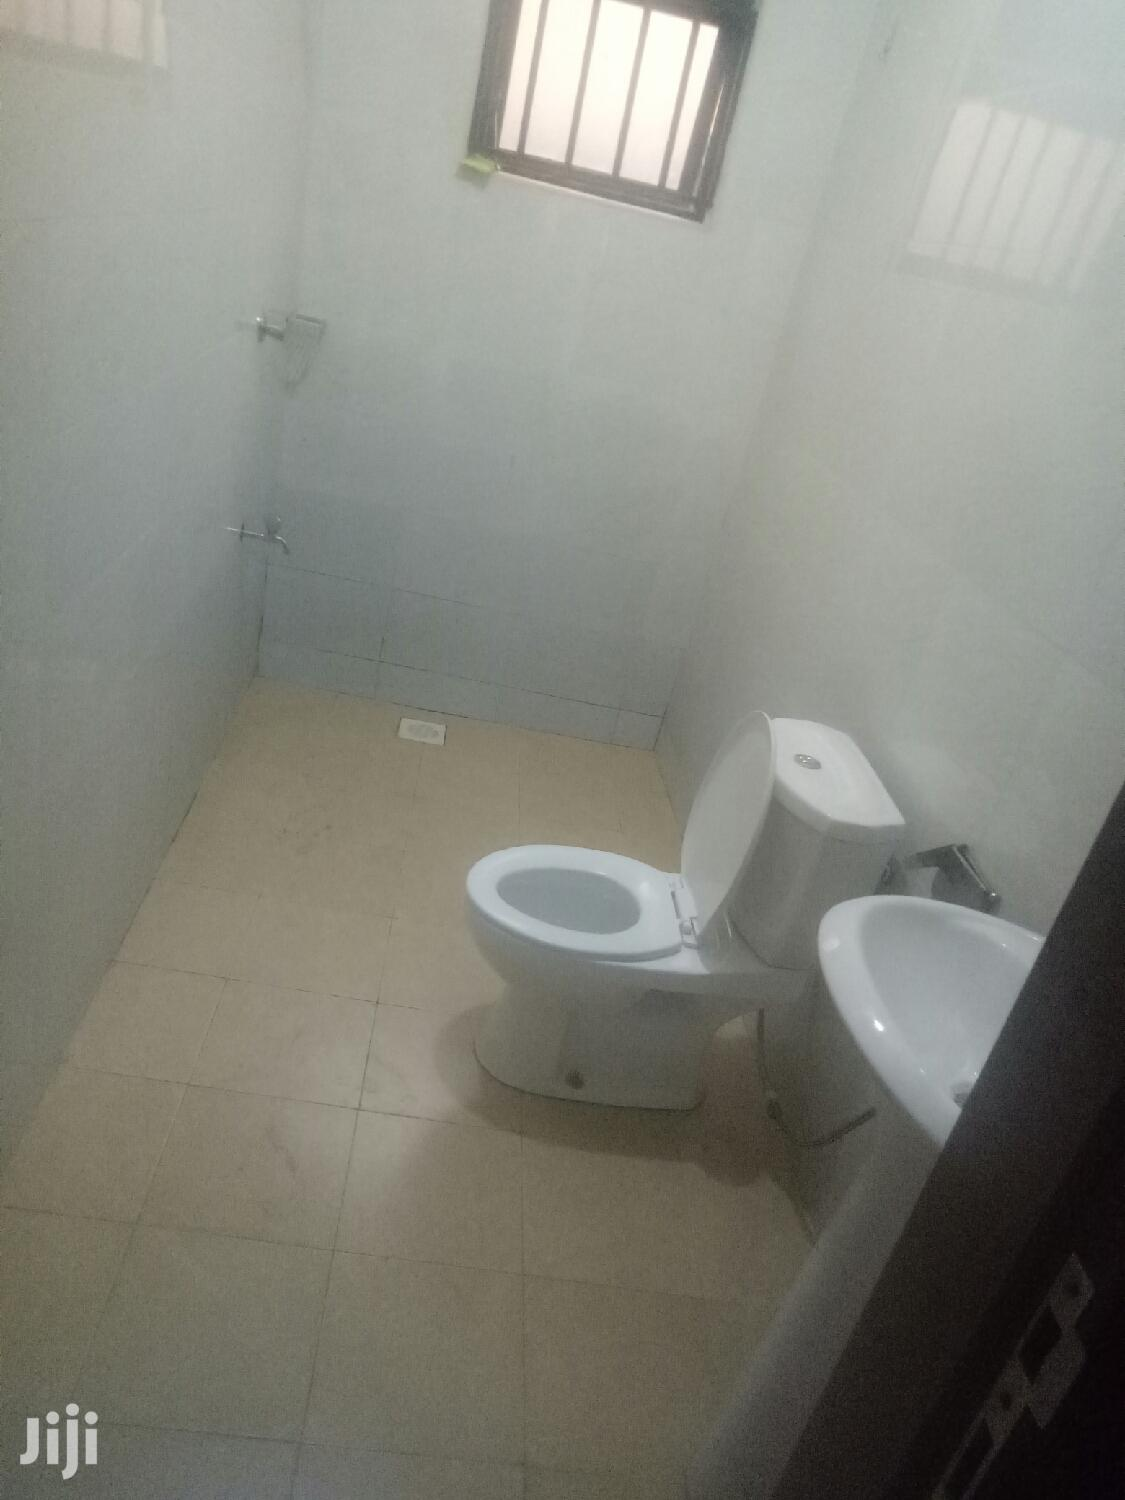 Mbuya Single Room Self Contained For Rent | Houses & Apartments For Rent for sale in Kampala, Central Region, Uganda